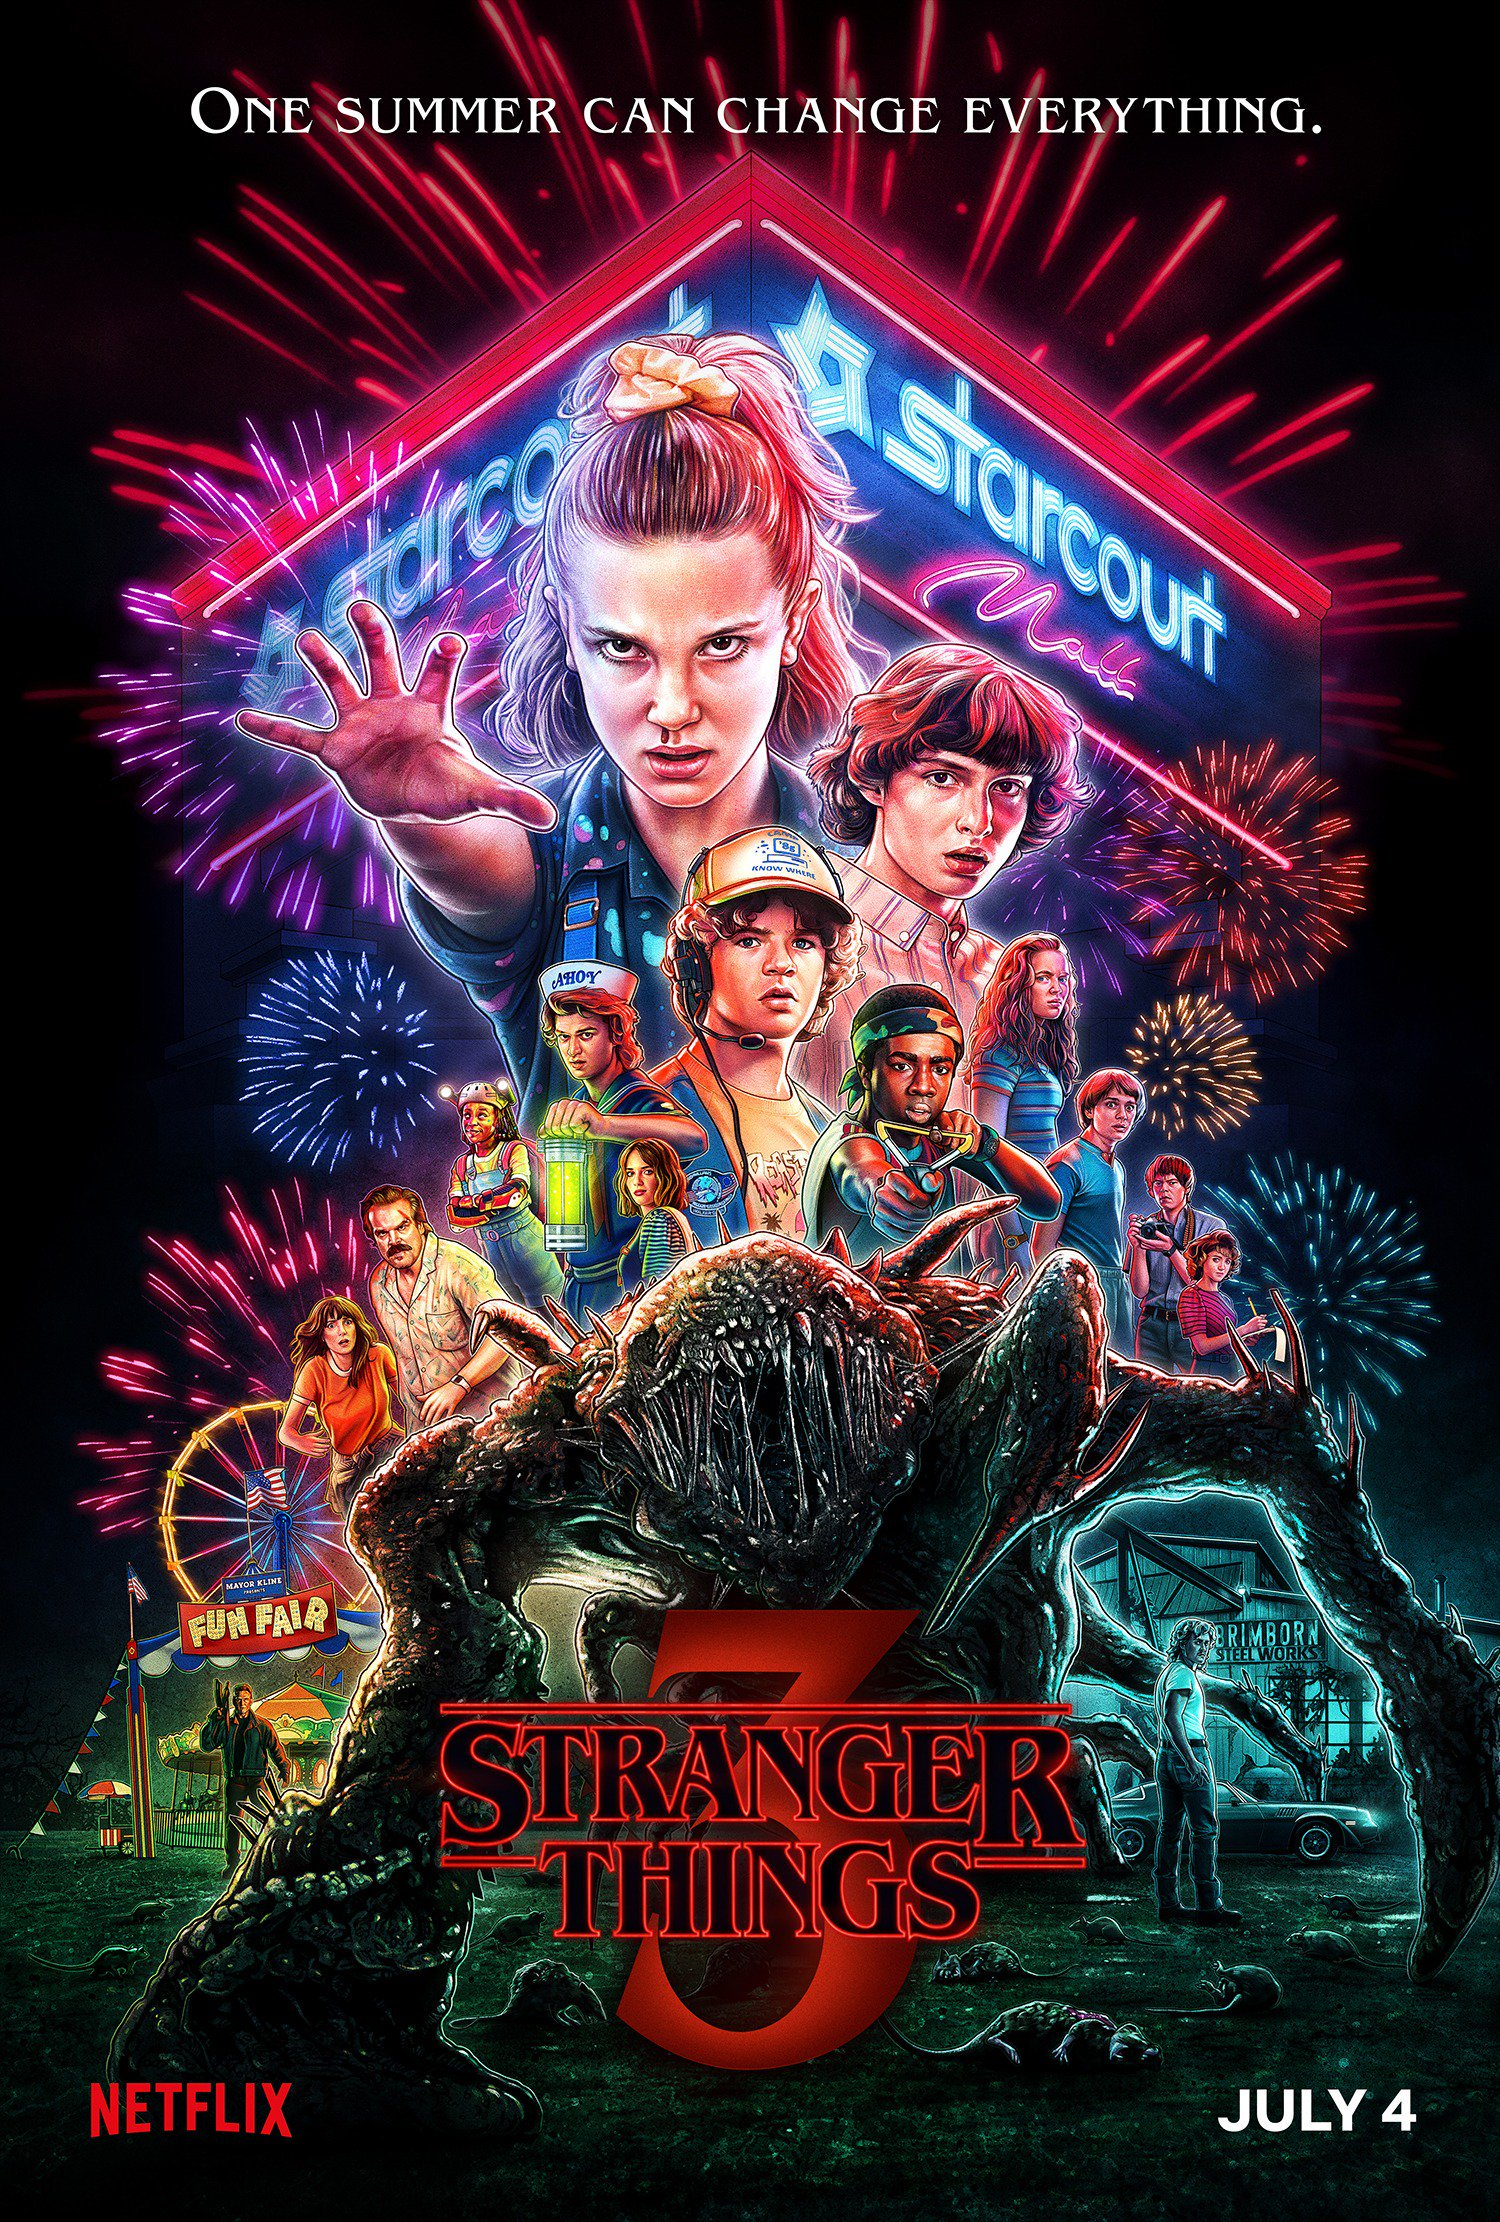 Stranger Things 3 soundtrack announced